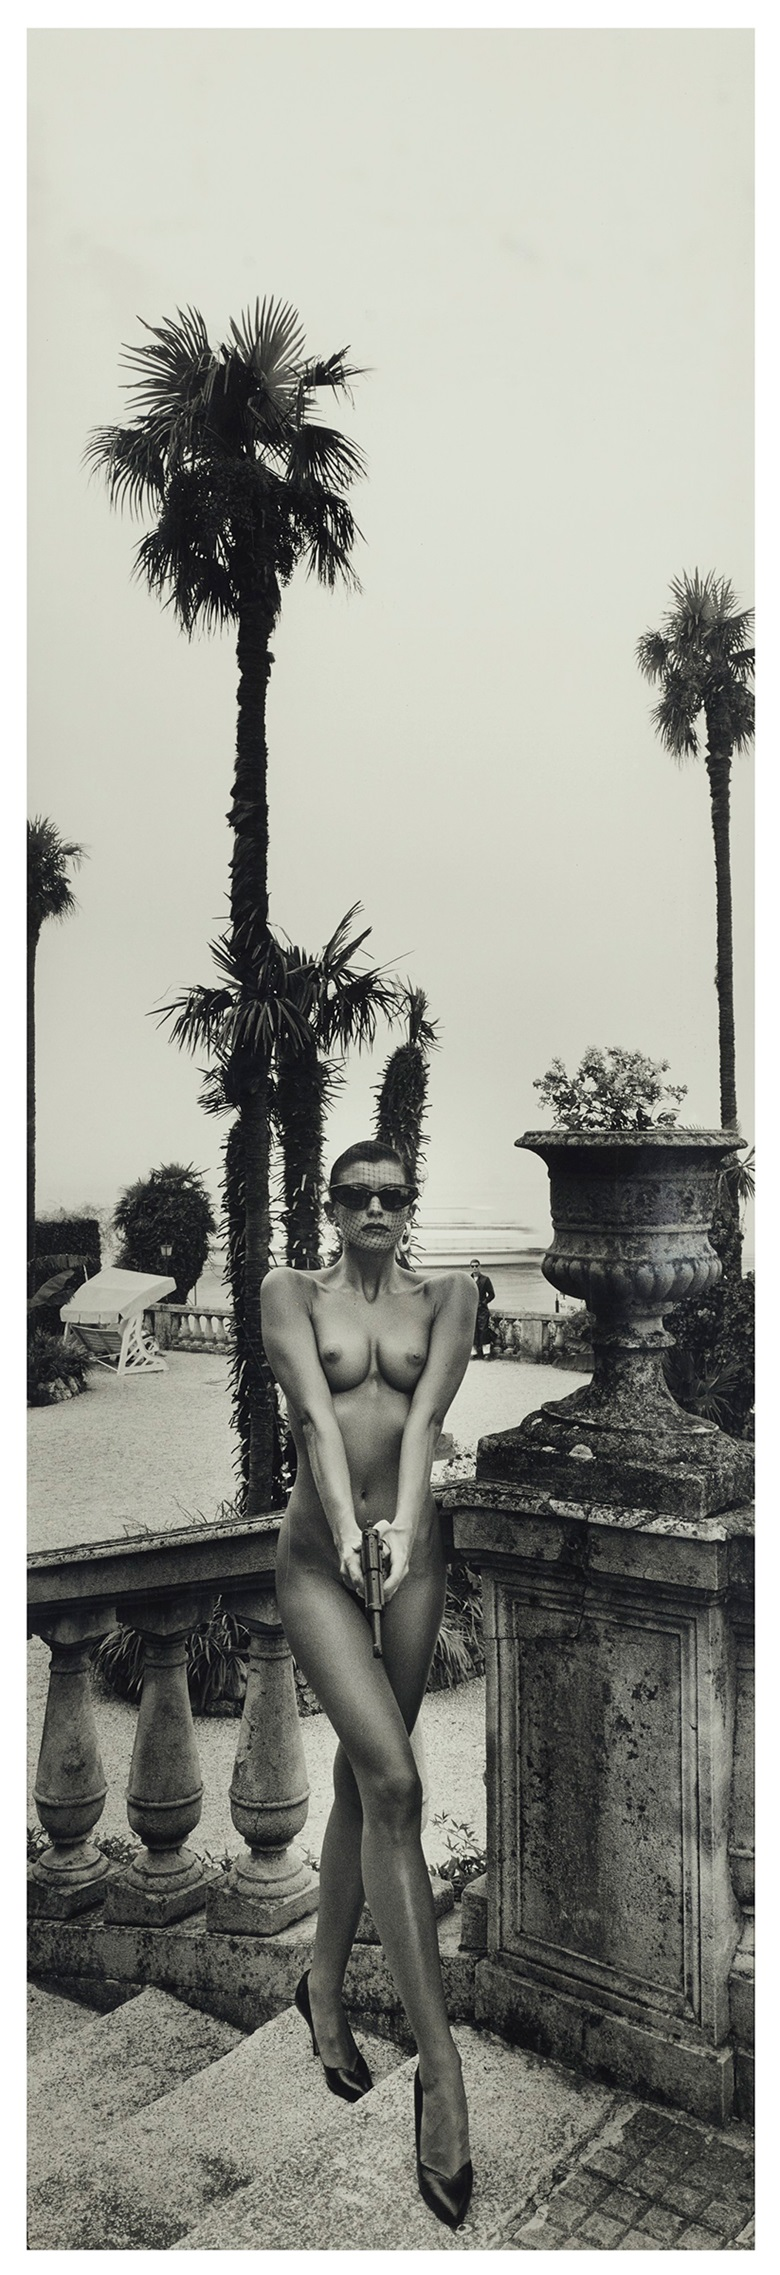 Helmut Newton (1920-2004), Panoramic Nude, Woman with Gun, Villa d'Este, Como, 1989. Gelatin silver print. Sheet 61½ x 22 in (158.8 x 55.9 cm). Estimate $300,000-500,000. Offered in Photographs on 2 October 2019 at Christie's in New York